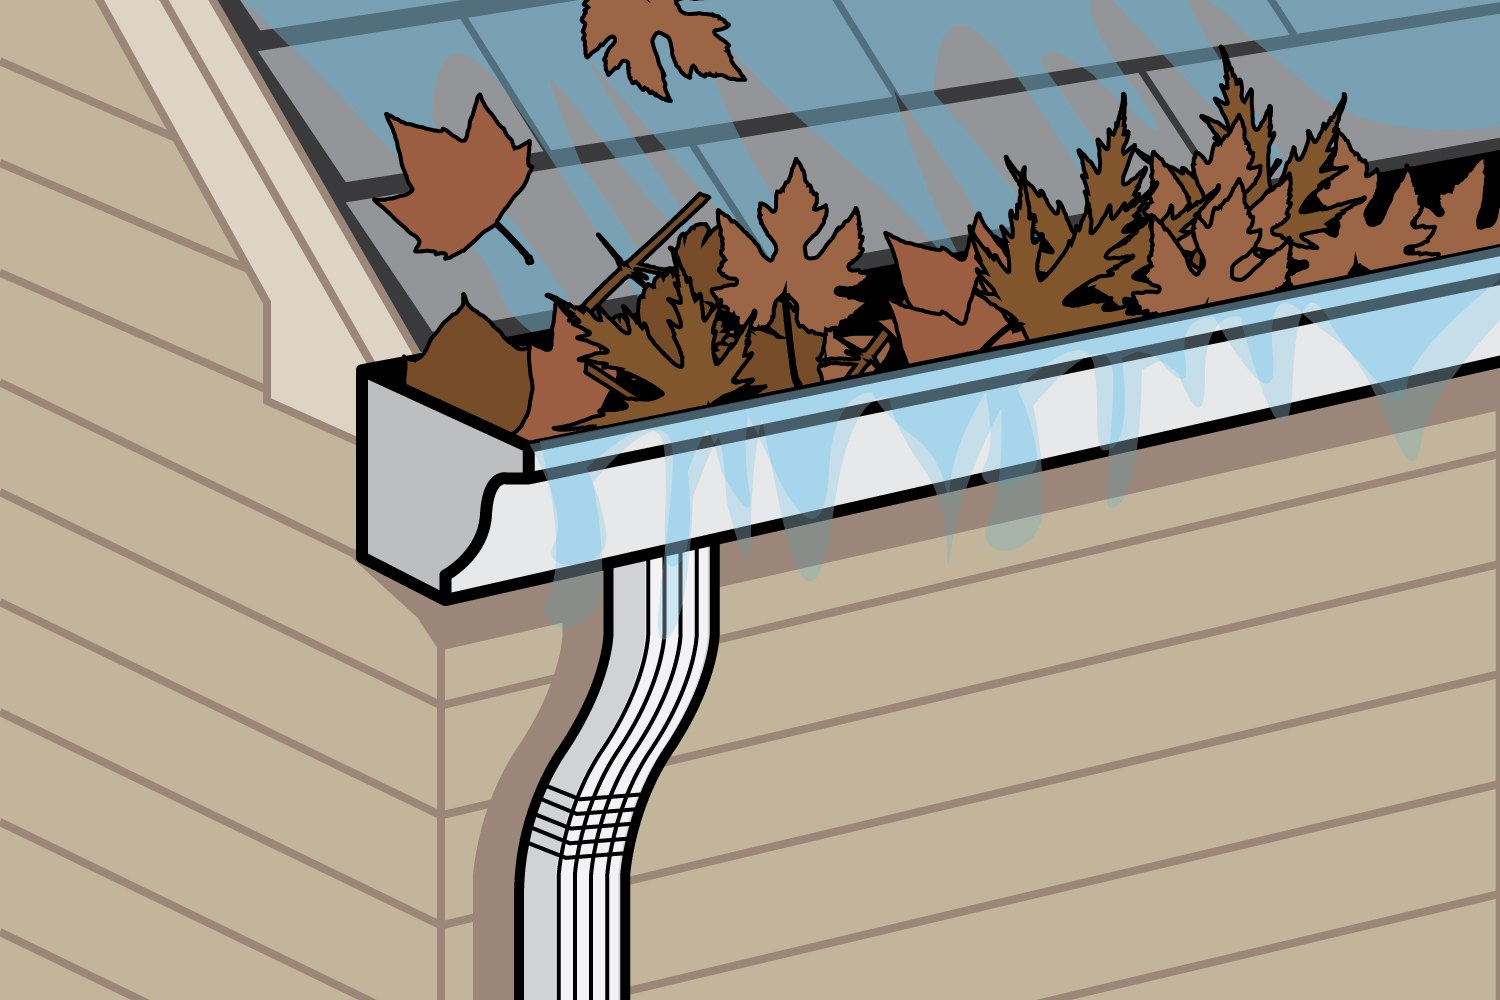 How To Clean Clogged Rain Gutter Downspouts With Pictures